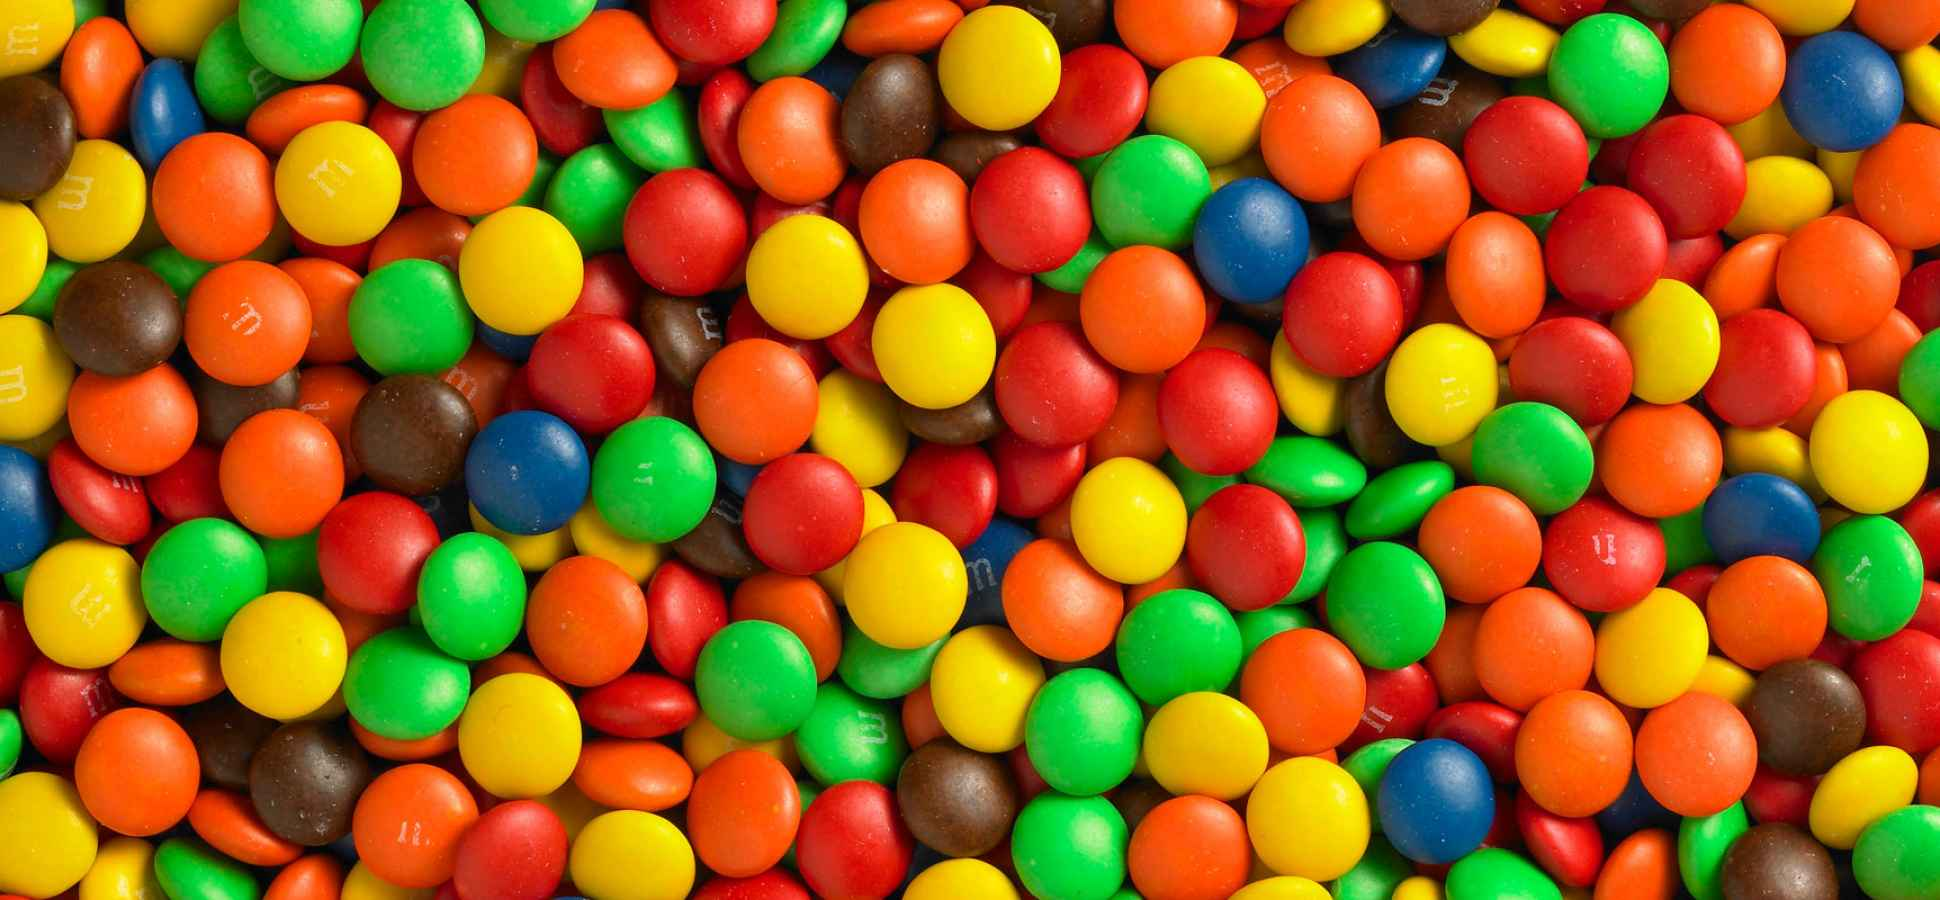 The Two Biggest Drags On Productivity: Meetings And Managers (Or, As We Call Them, M&Ms)